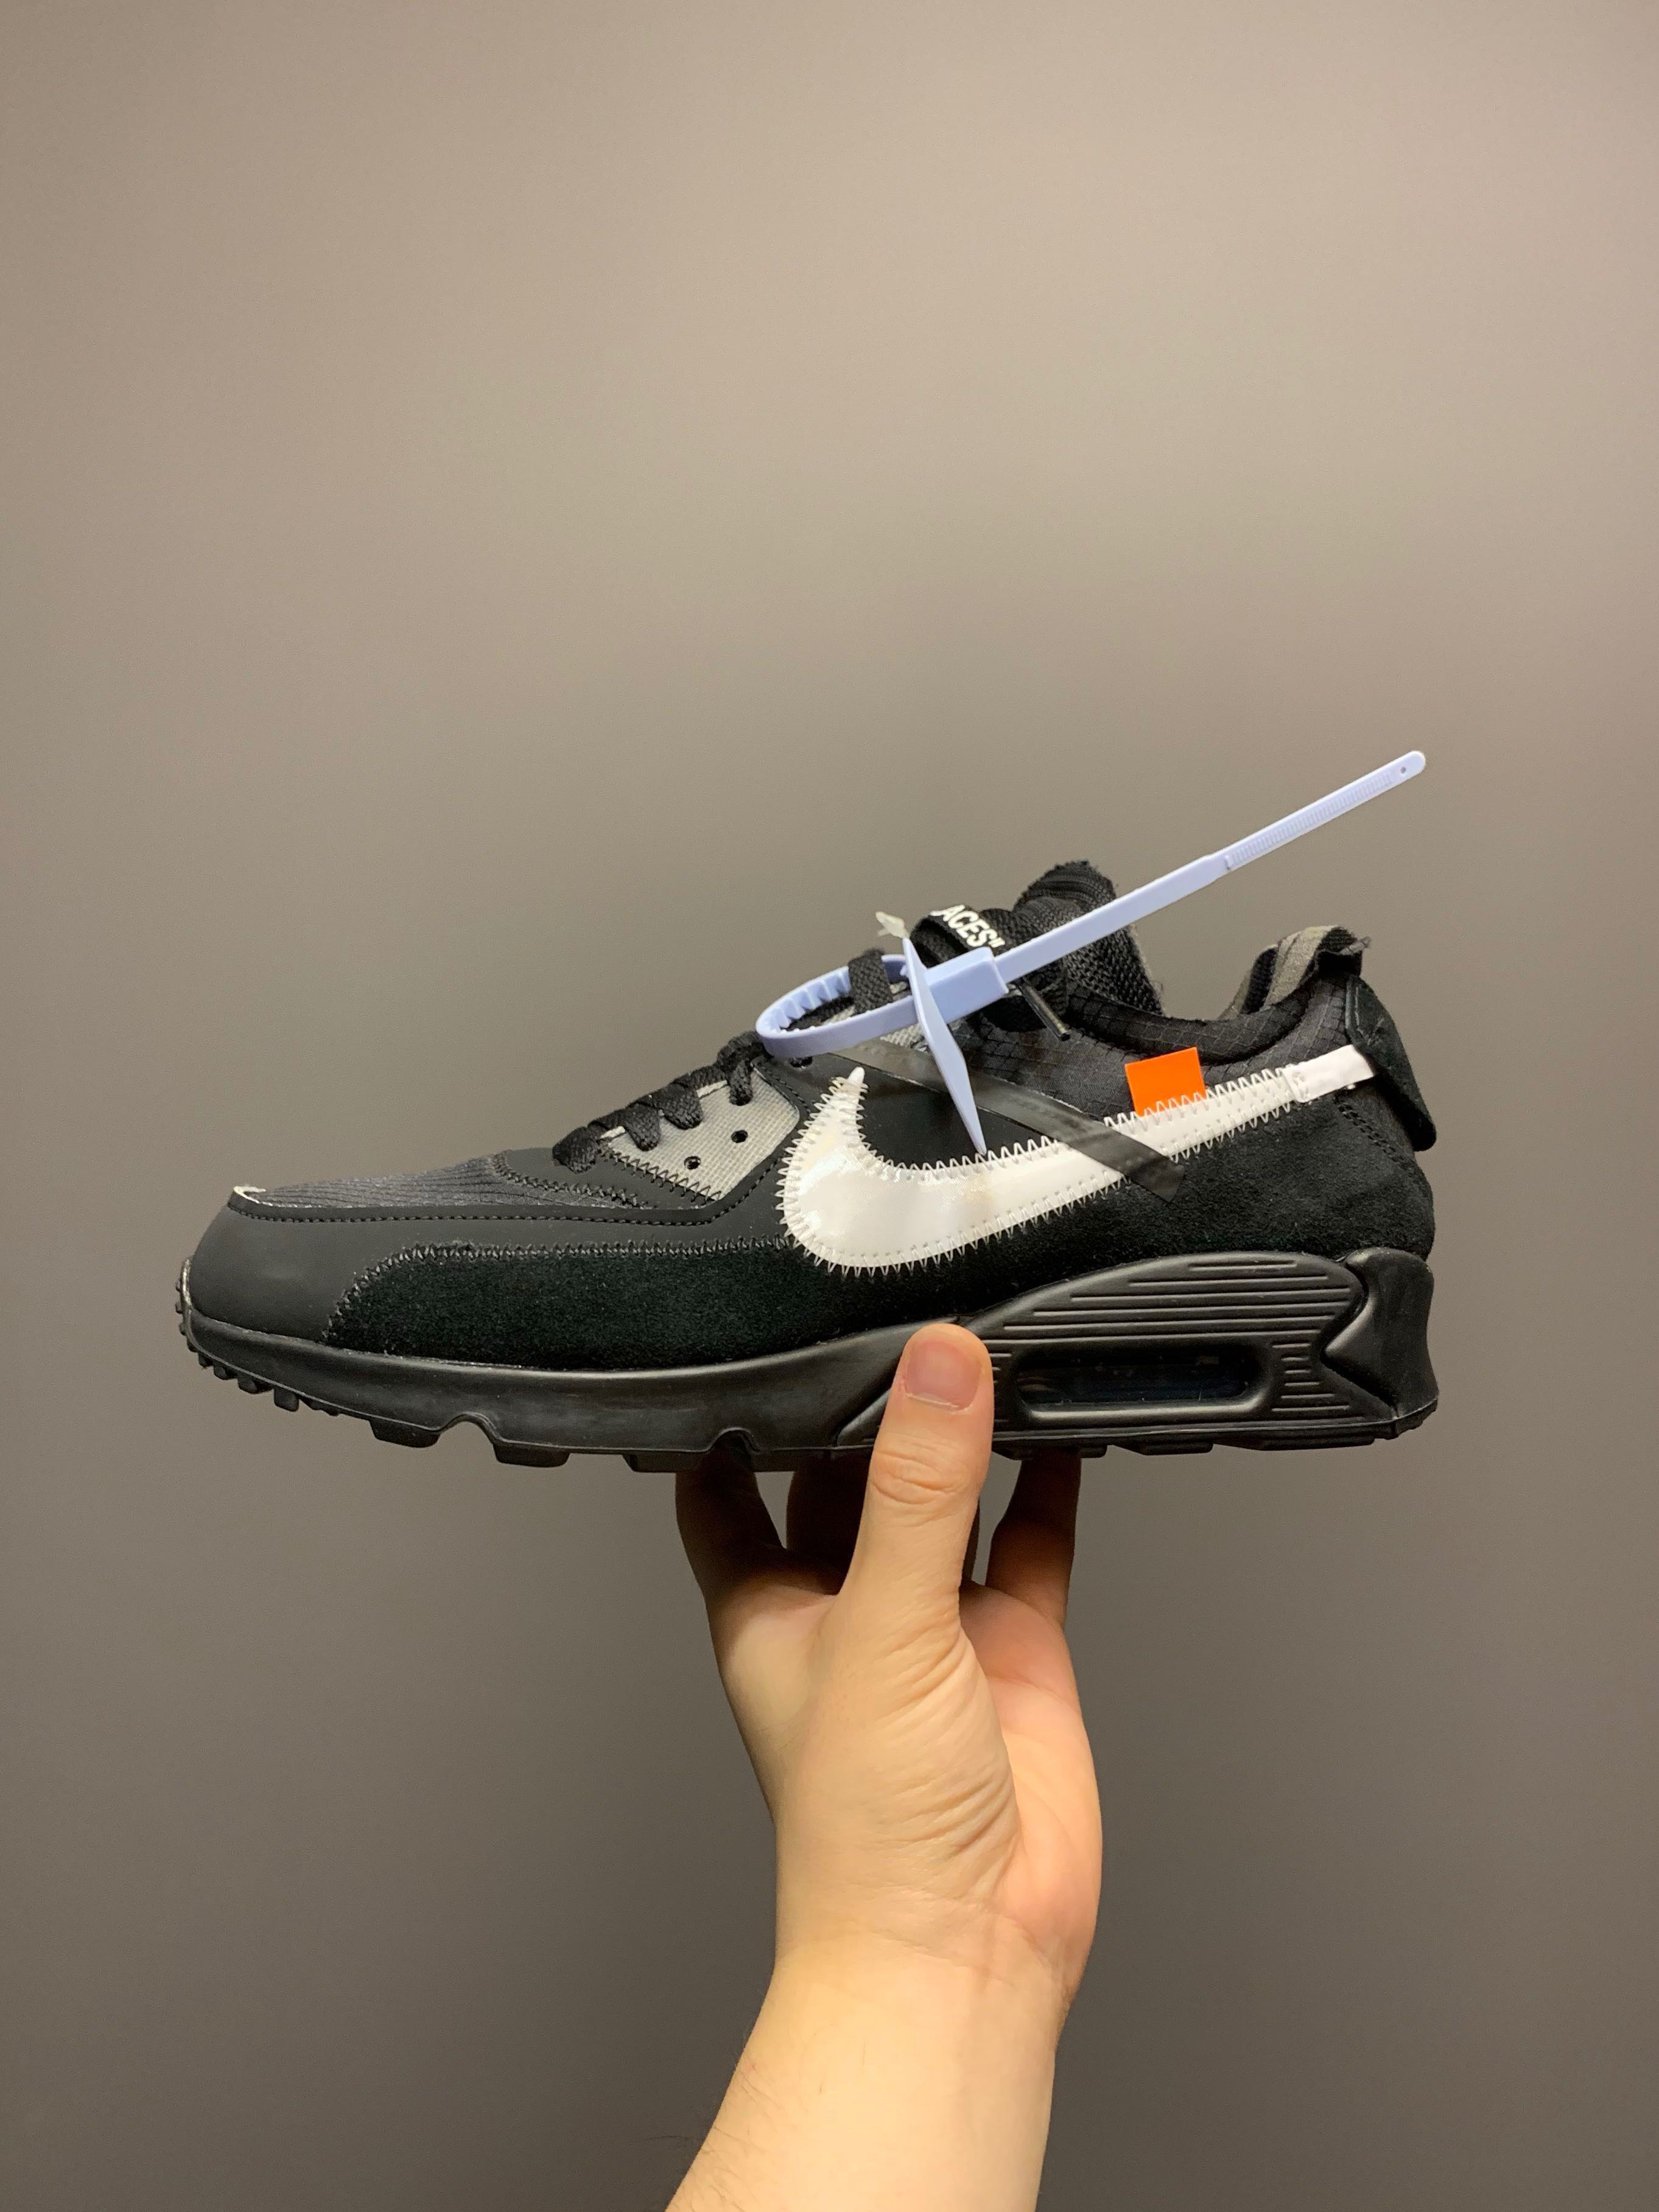 55d3c2d4d1b6 Nike Off White Air Max 90 Black